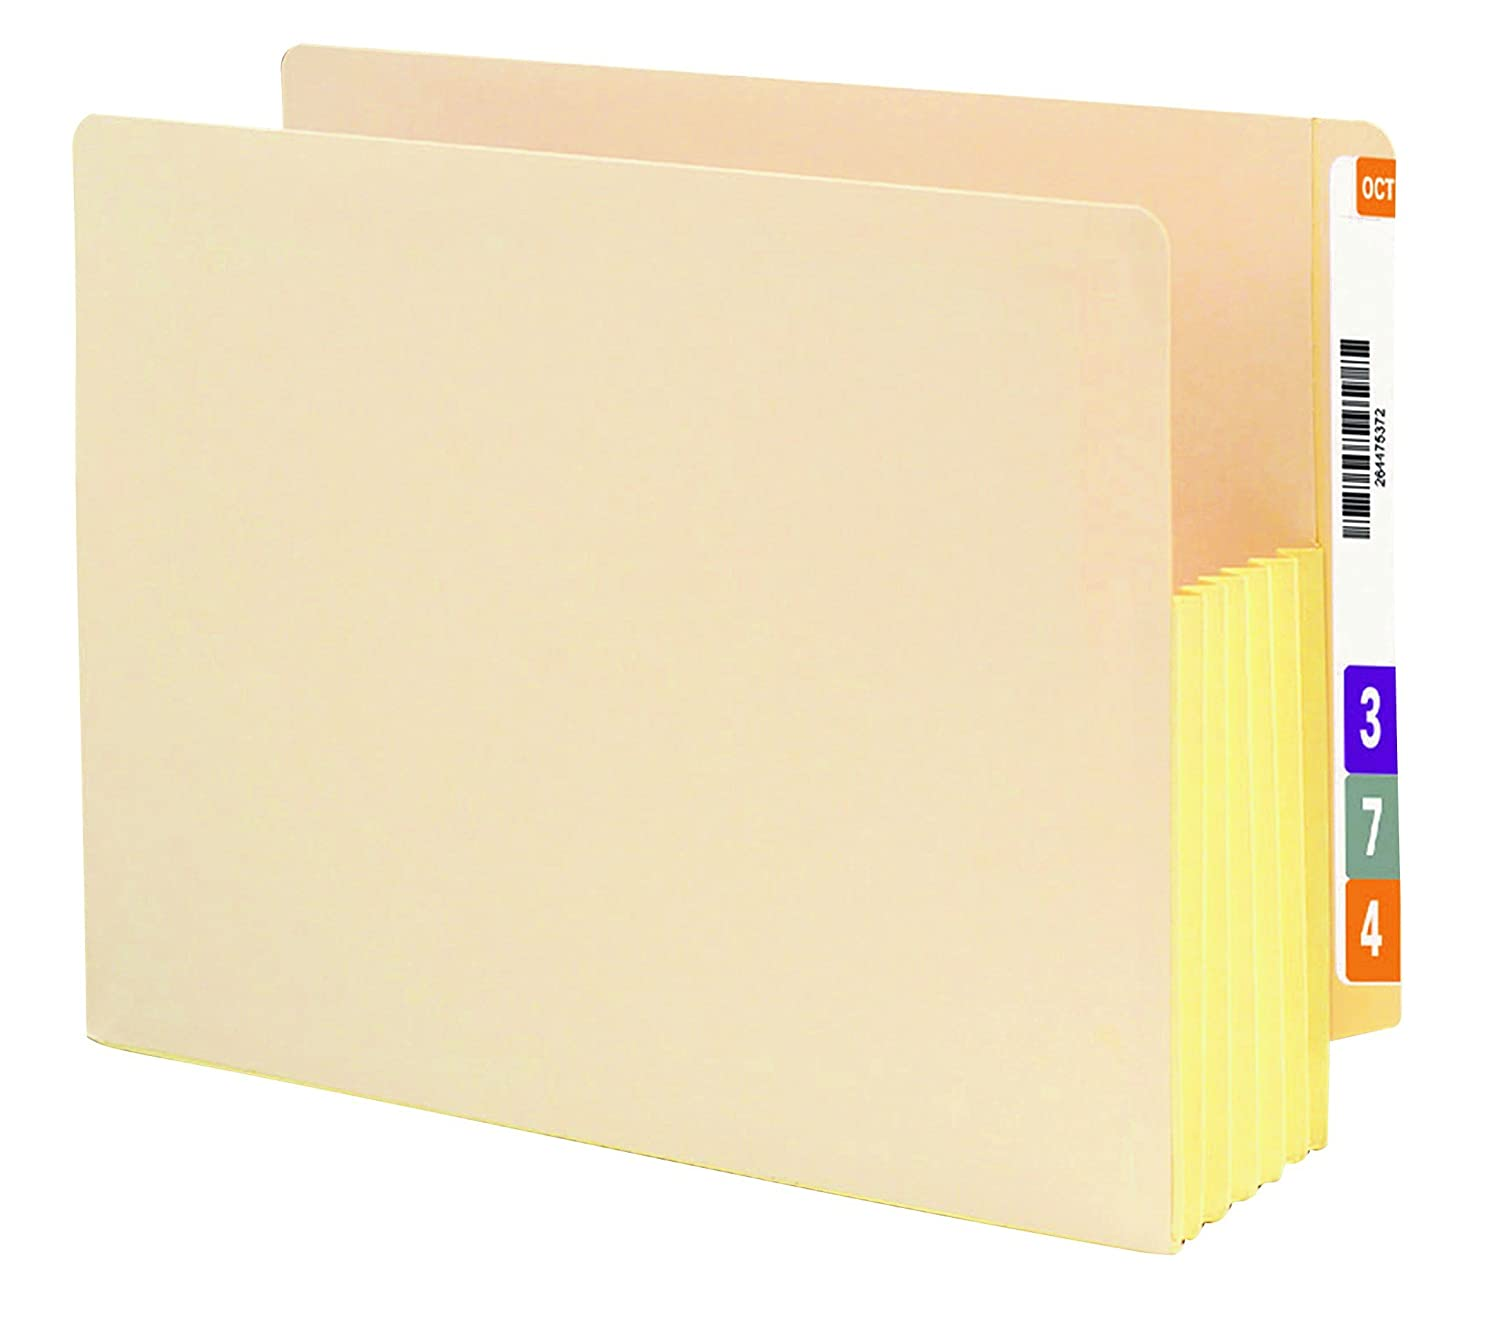 Smead End Tab File Pocket, Letter, Straight, 5.75-Inch Expansion, Manila, 10 per Box (75174)